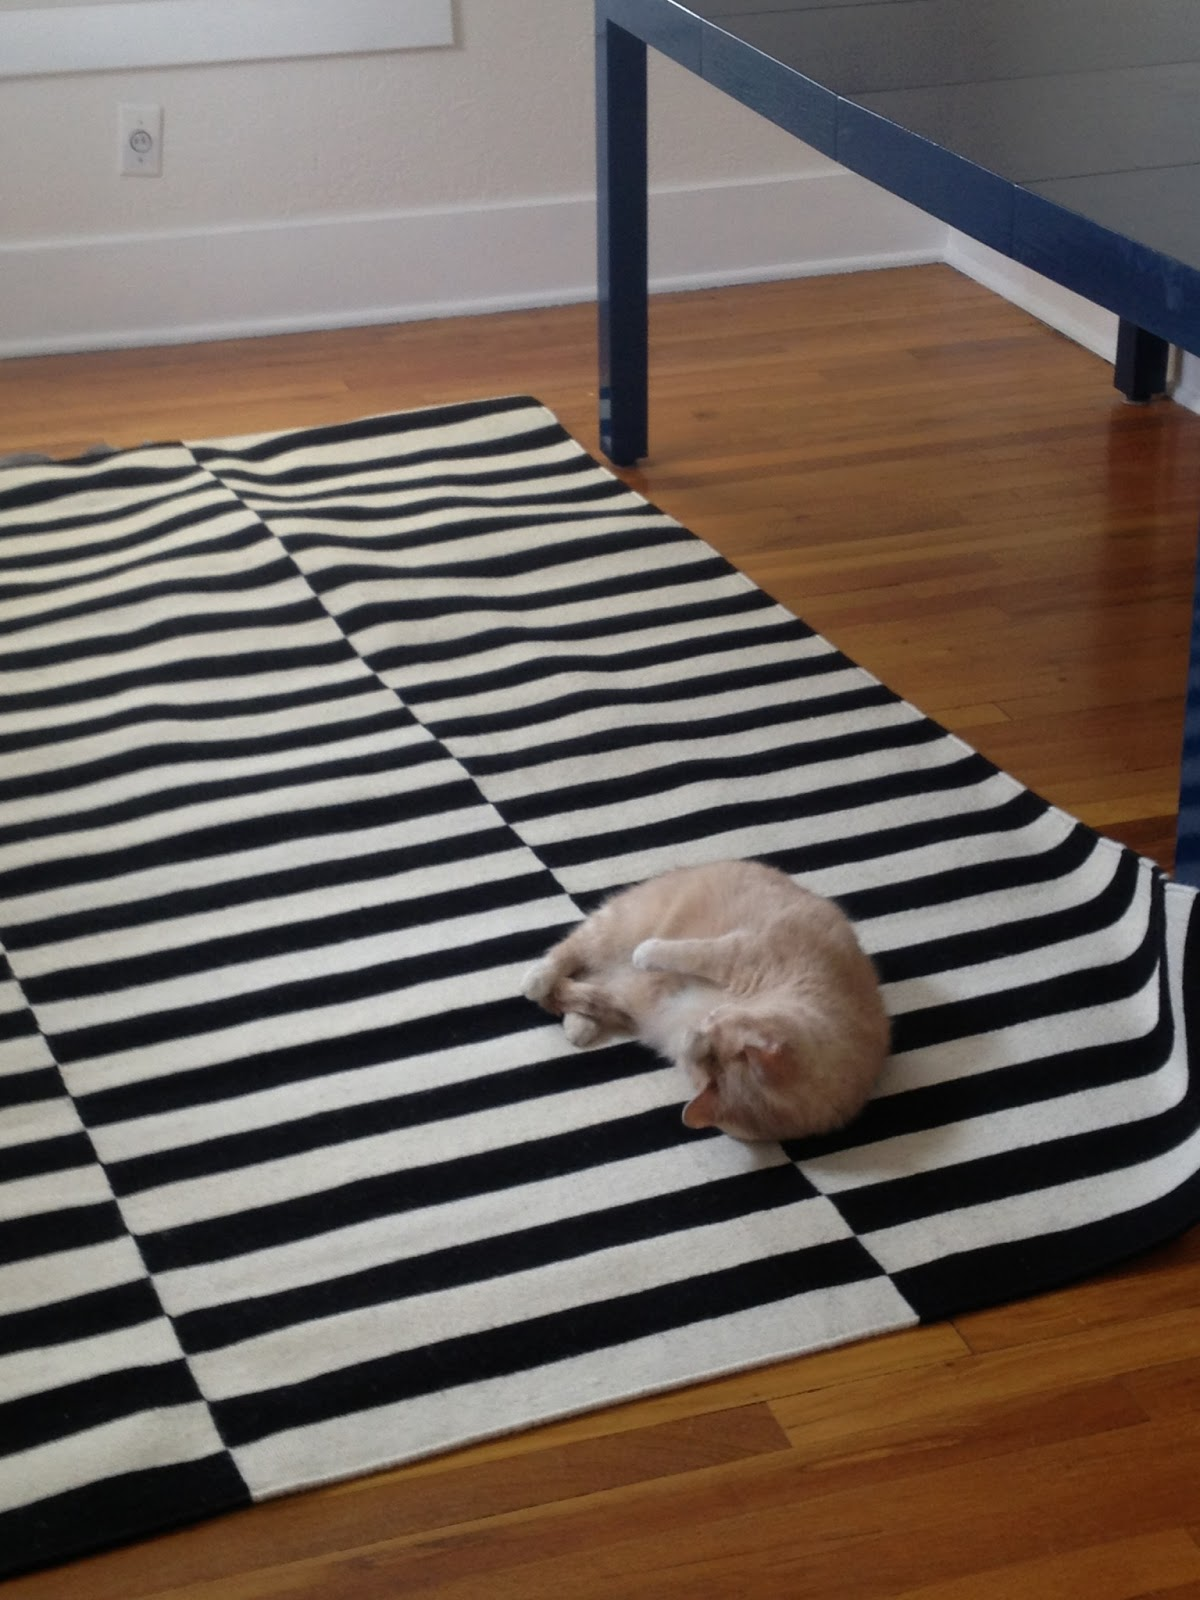 Ikea dining room 2013 - I Returned The Way Too Big Rug And Bought The Smaller Size I Was Really Happy Because I Love This Rug But Kitty Loves It Even More